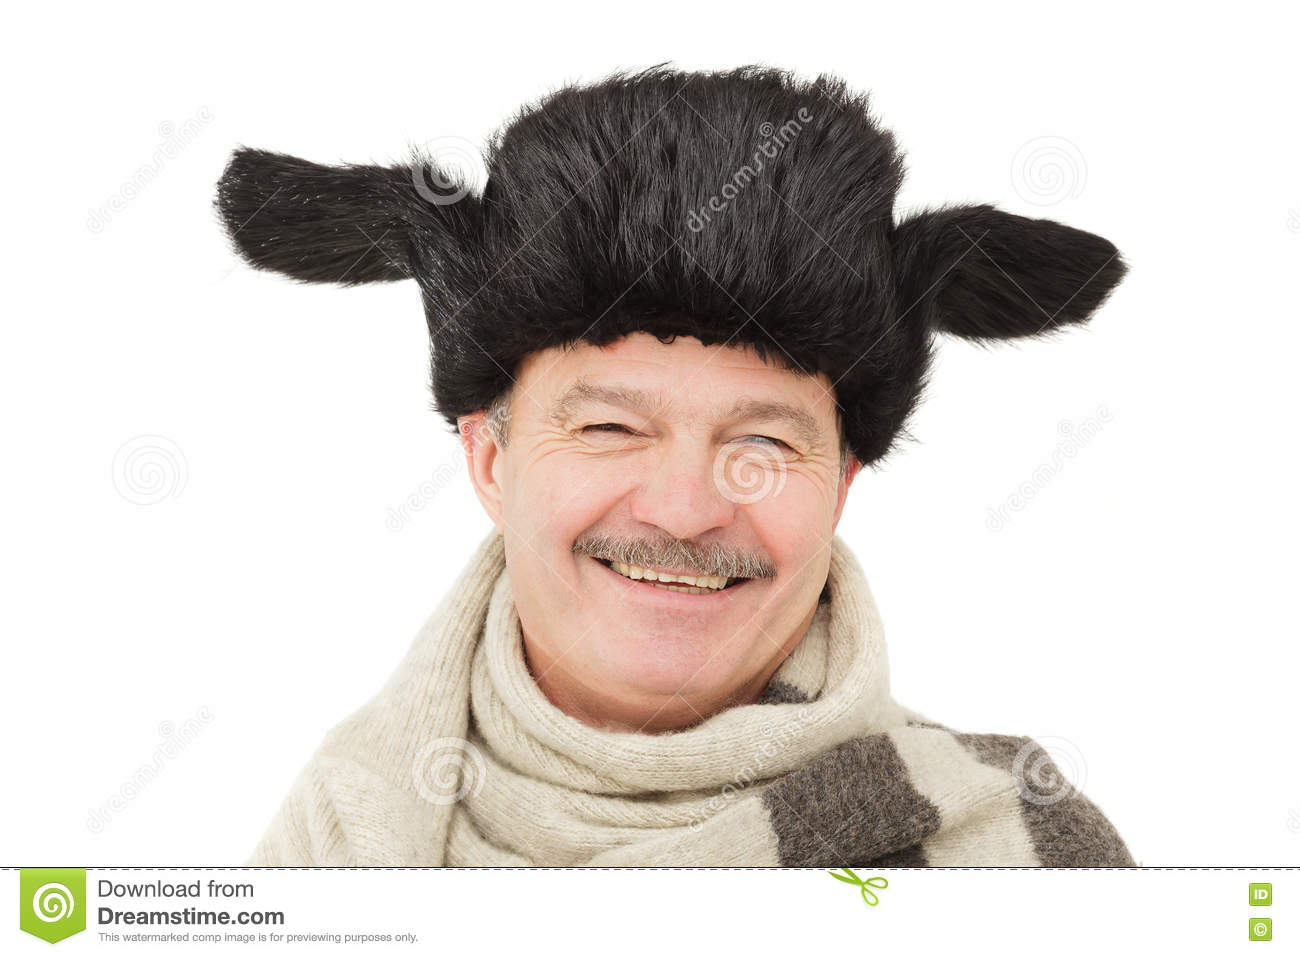 12b5f574cfda0 Elderly Man In Warm Fur Hat With Earflaps. Stock Image - Image of ...